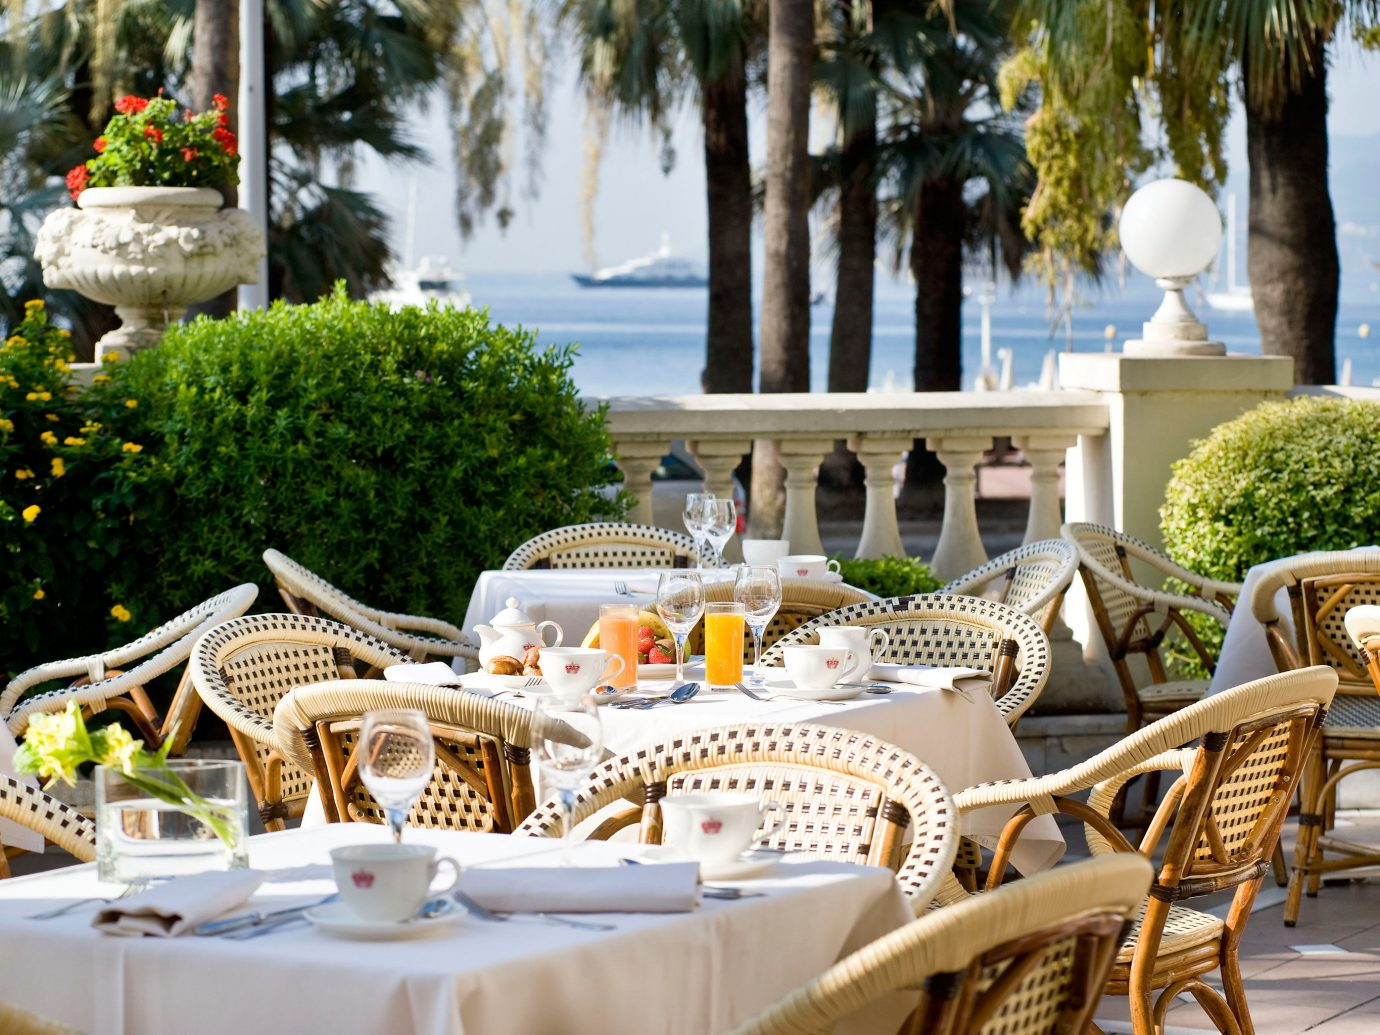 Balcony Dining Drink Eat Hotels Patio Terrace Travel Tips Trip Ideas table tree chair outdoor Picnic meal ceremony wedding estate restaurant backyard outdoor structure dining table